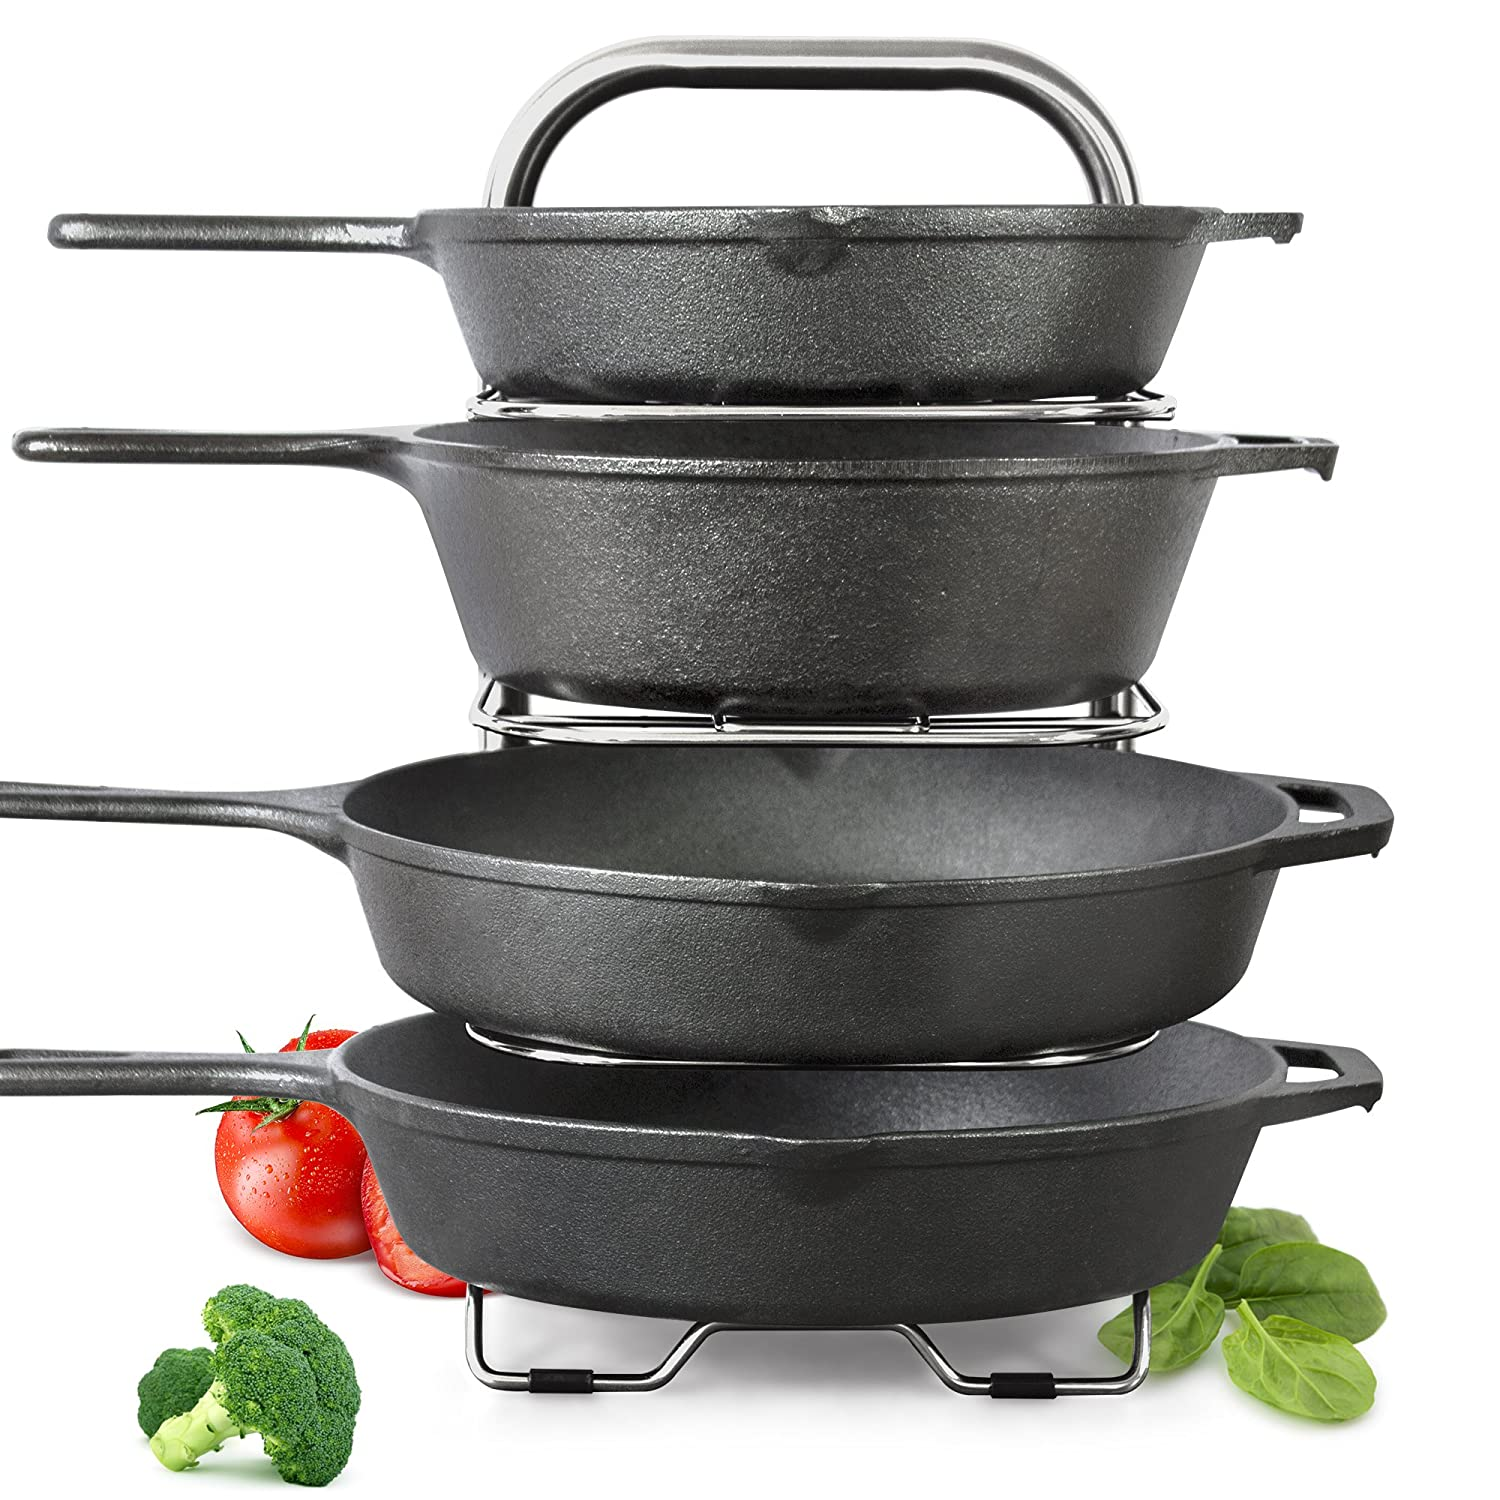 "BetterThingsHome 5-Tier Height Adjustable Pan and Pot Organizer Rack: Adjust in increments of 1.25"", 10, 11 & 12 Inch Cookware Lid Holder, Stainless Steel (15"" Tall)"